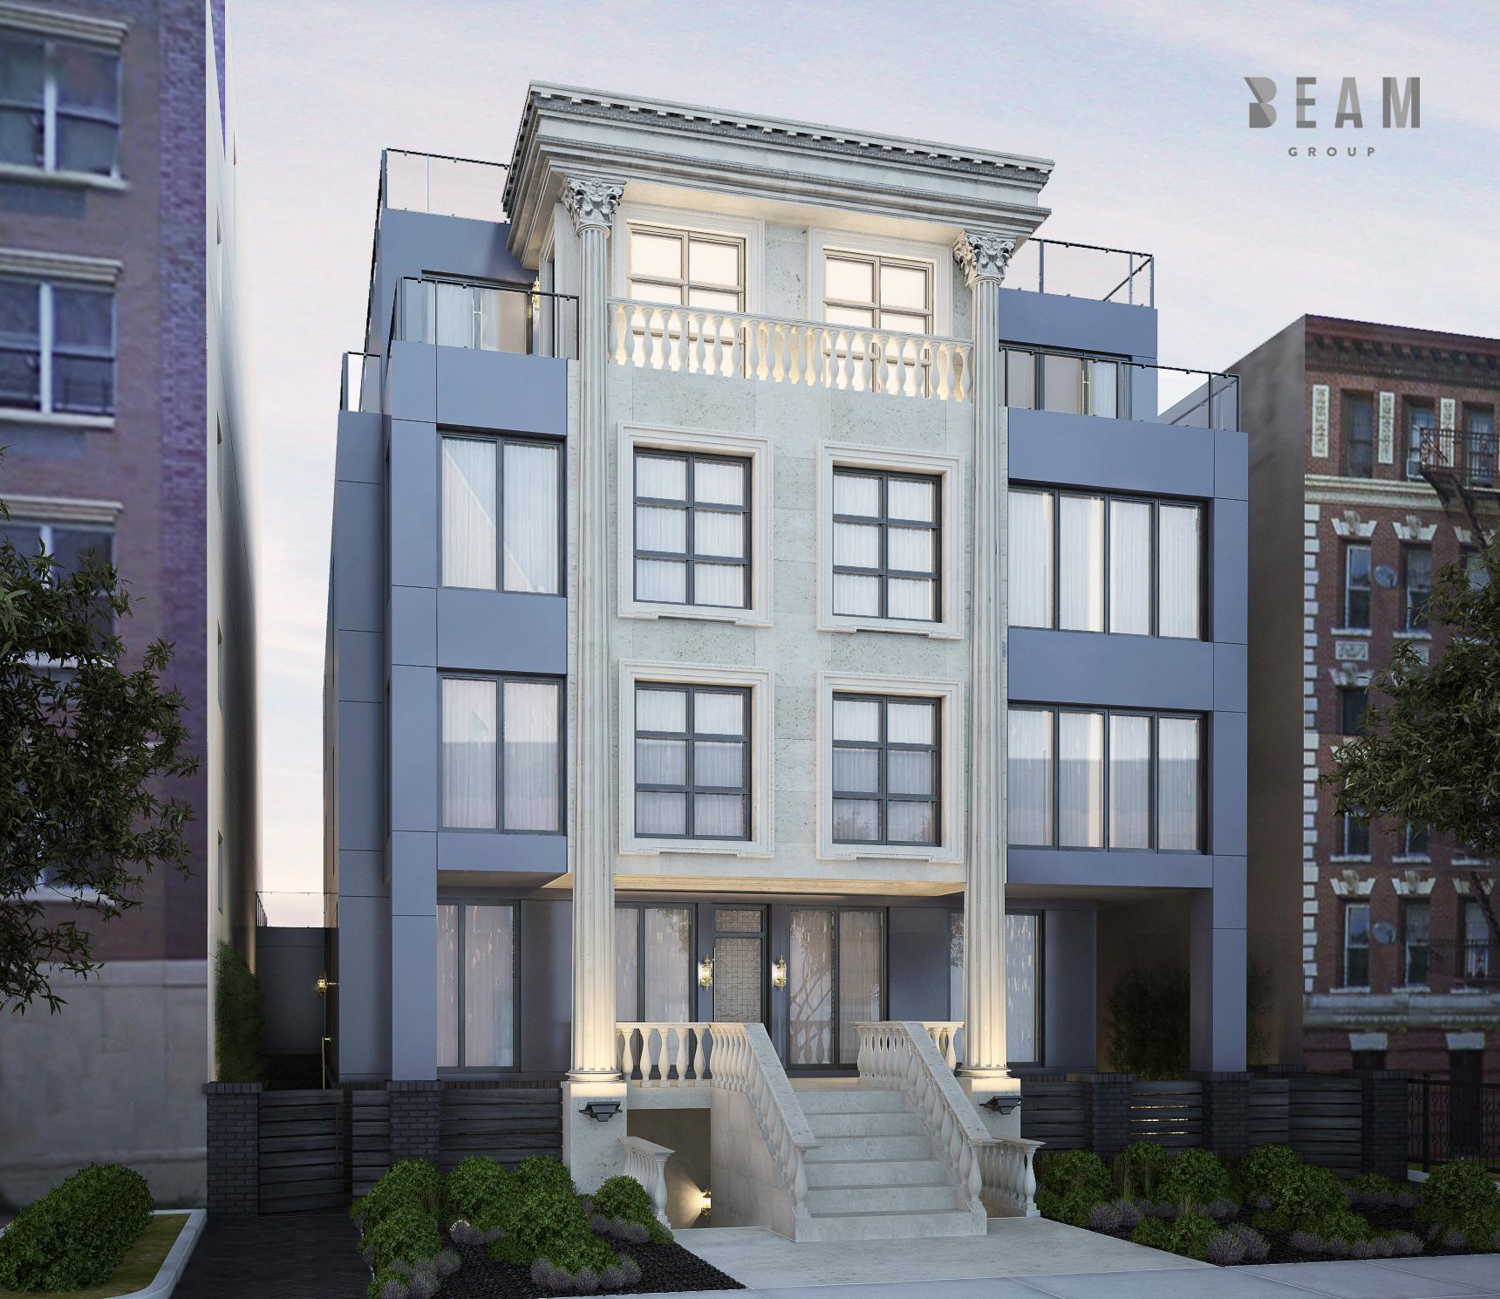 489 Washington Avenue, design by BEAM Group